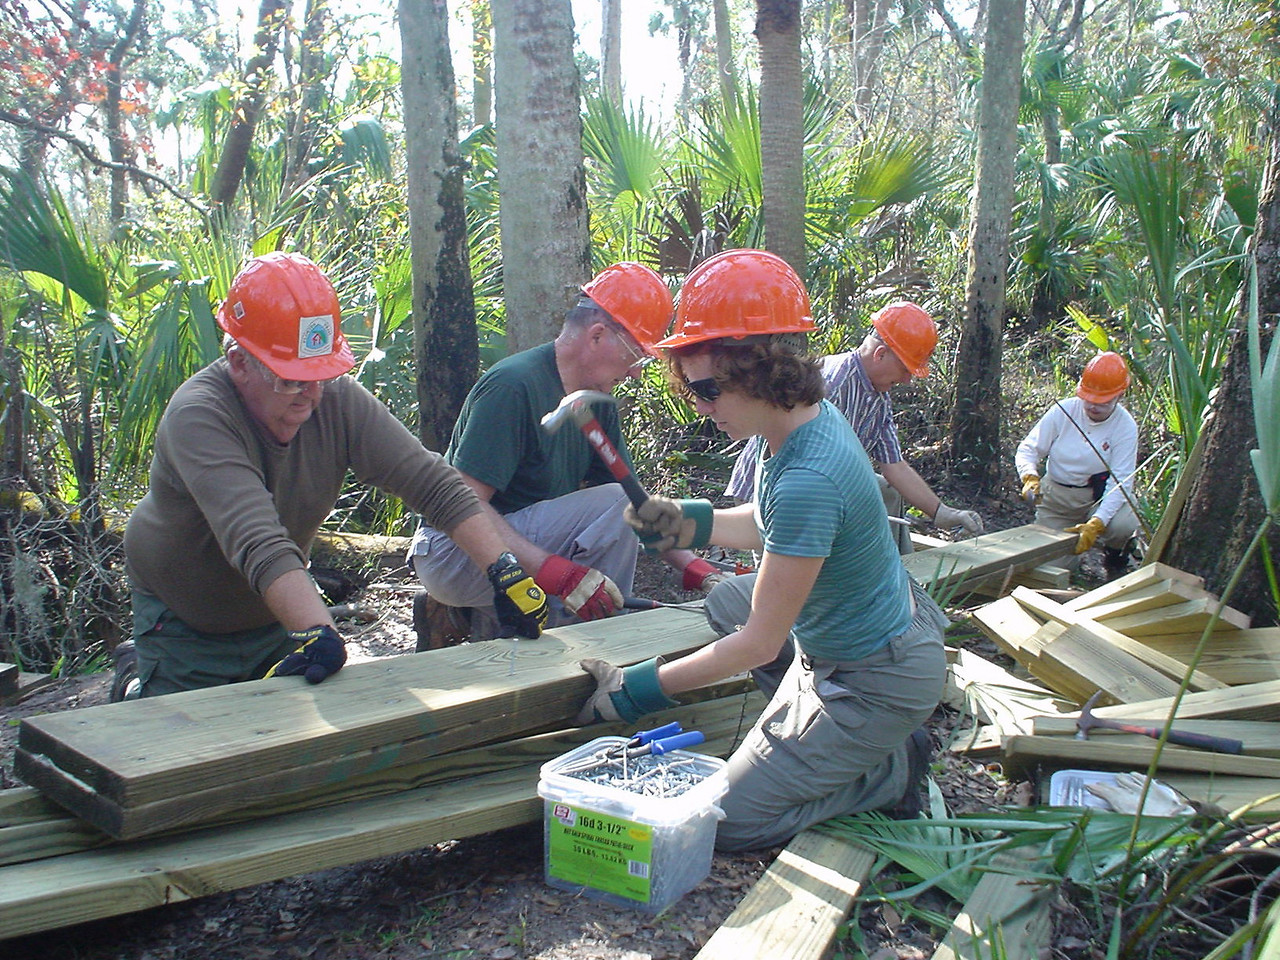 F-Troop at work<br /> PHOTO CREDIT: Bob Woods / Florida Trail Association